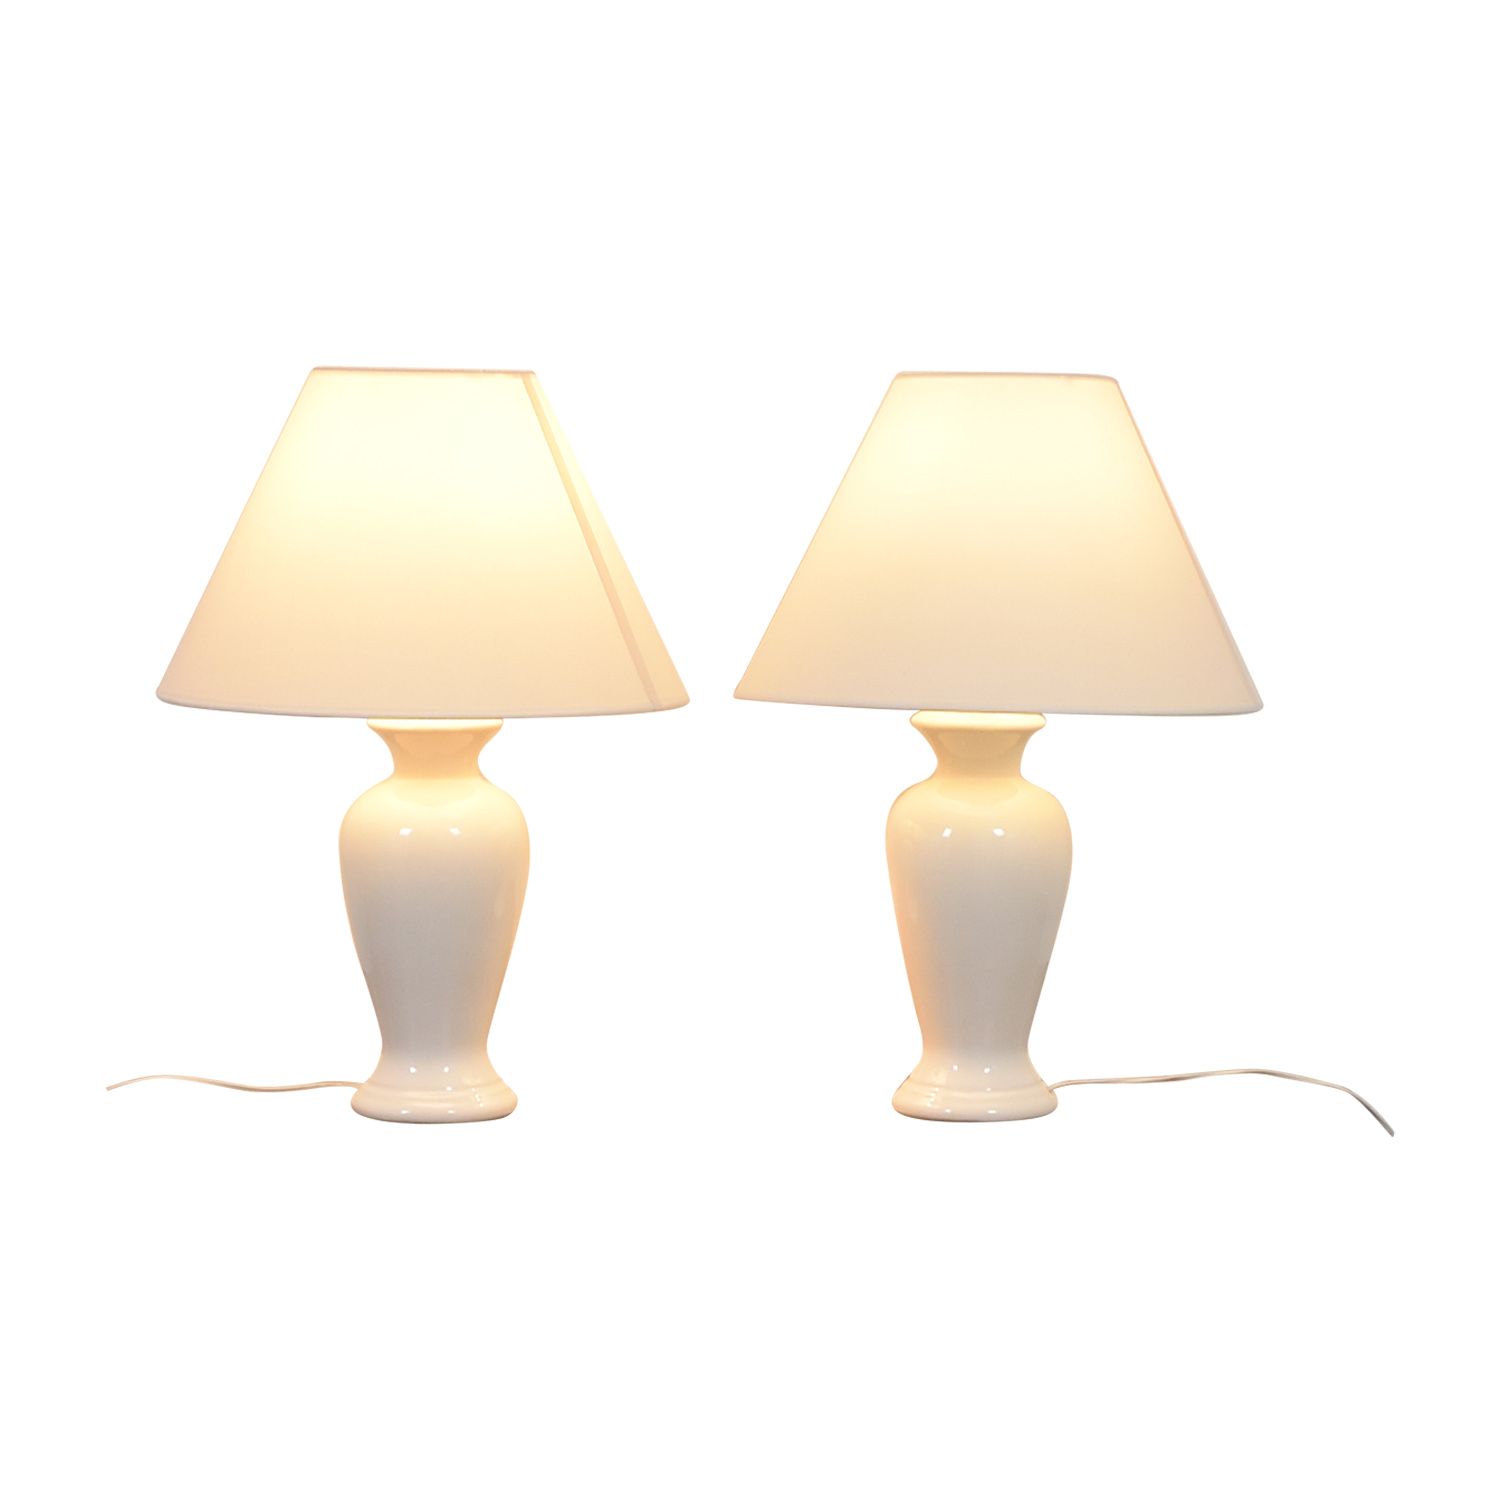 White Porcelain Lamps on sale